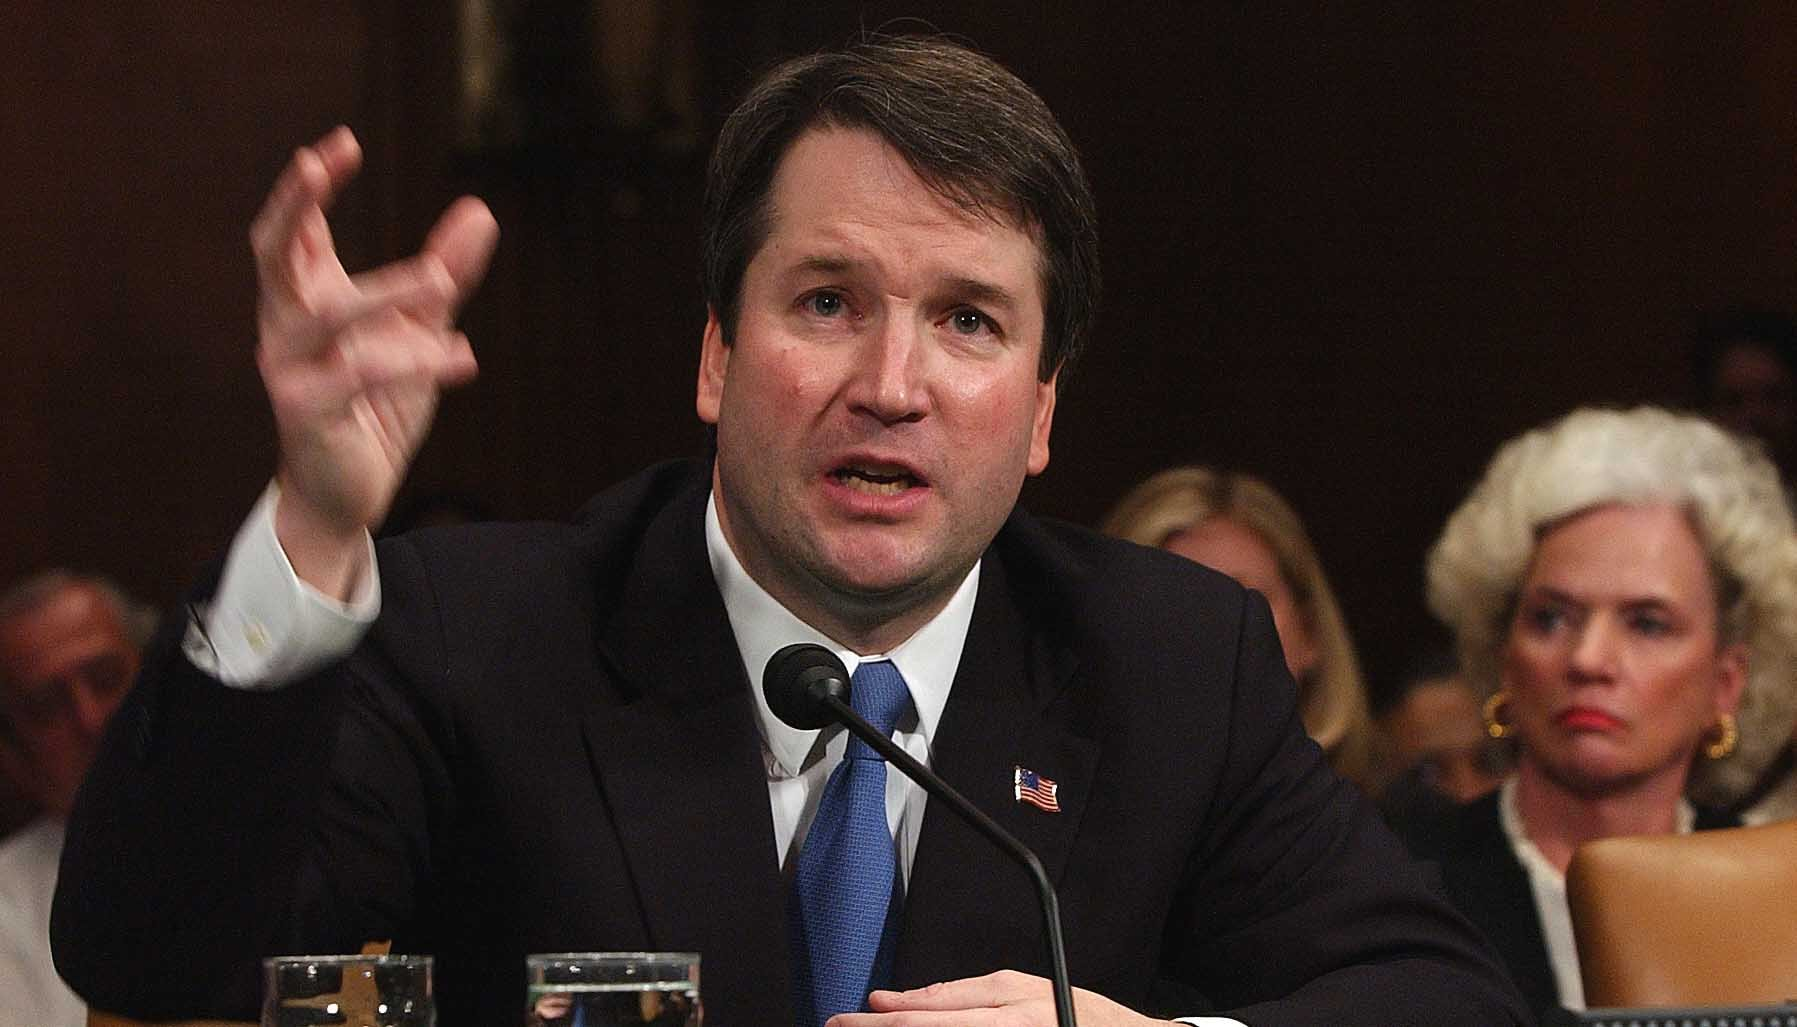 Trump nominates Brett Kavanaugh to the Supreme Court